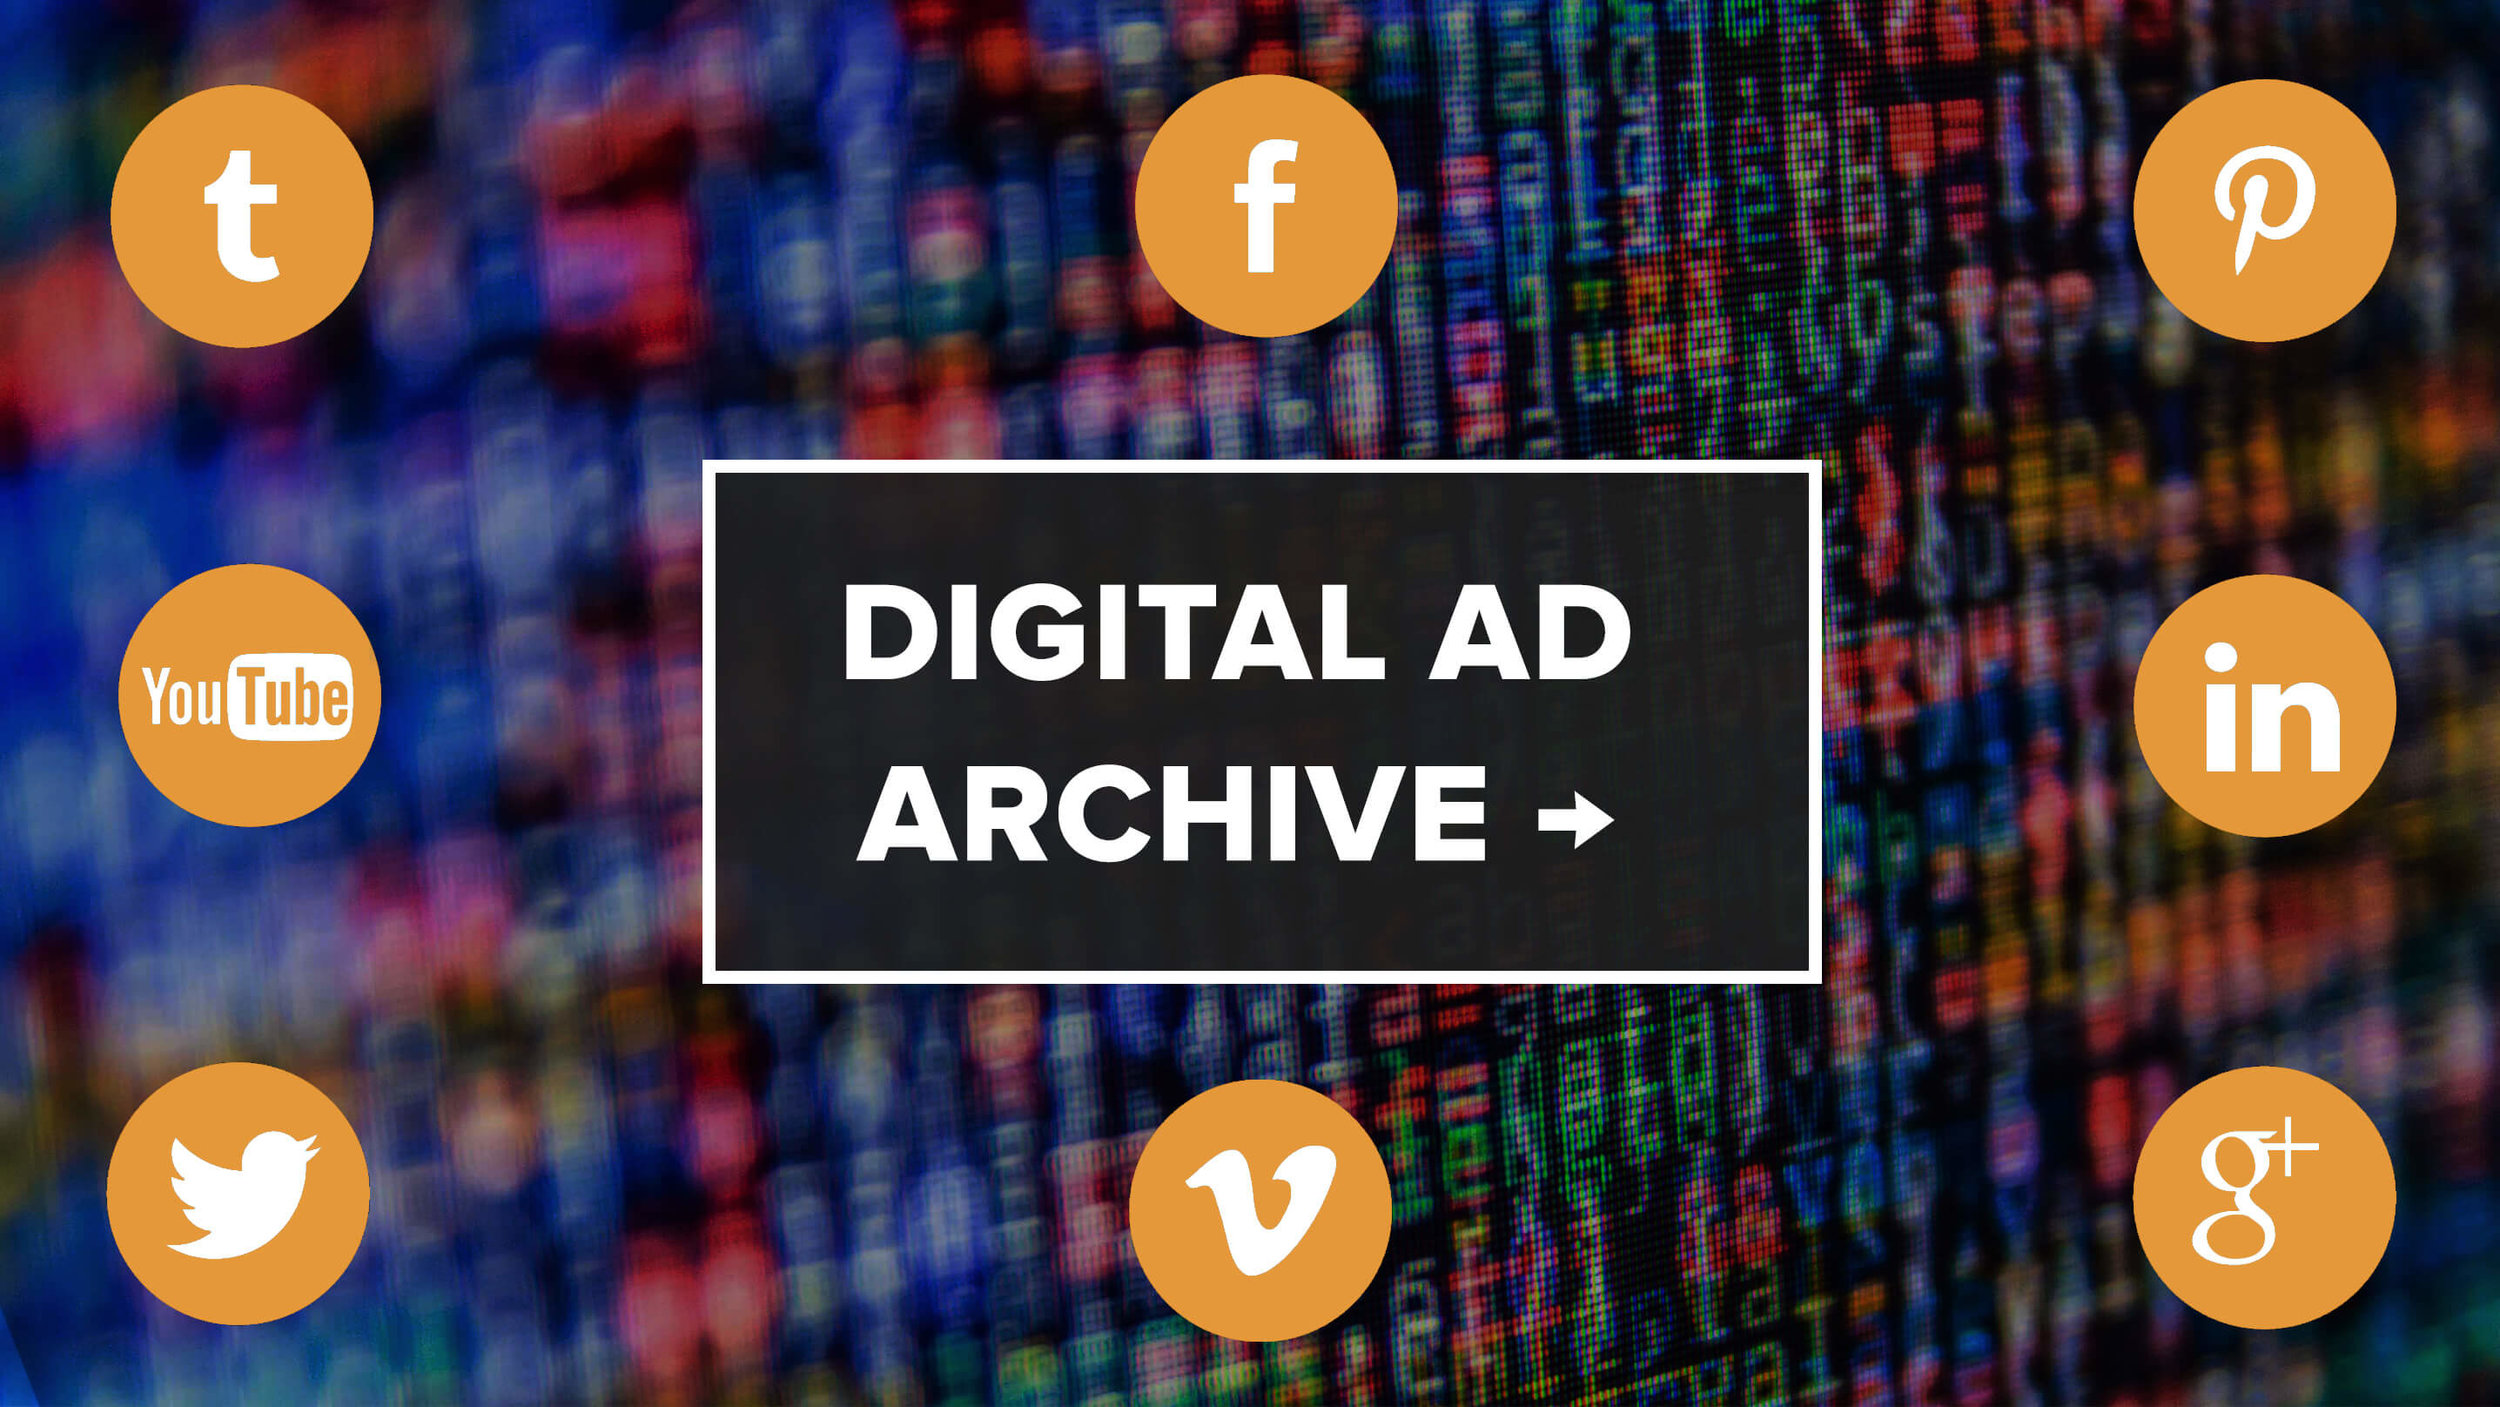 Digital Ad Archive